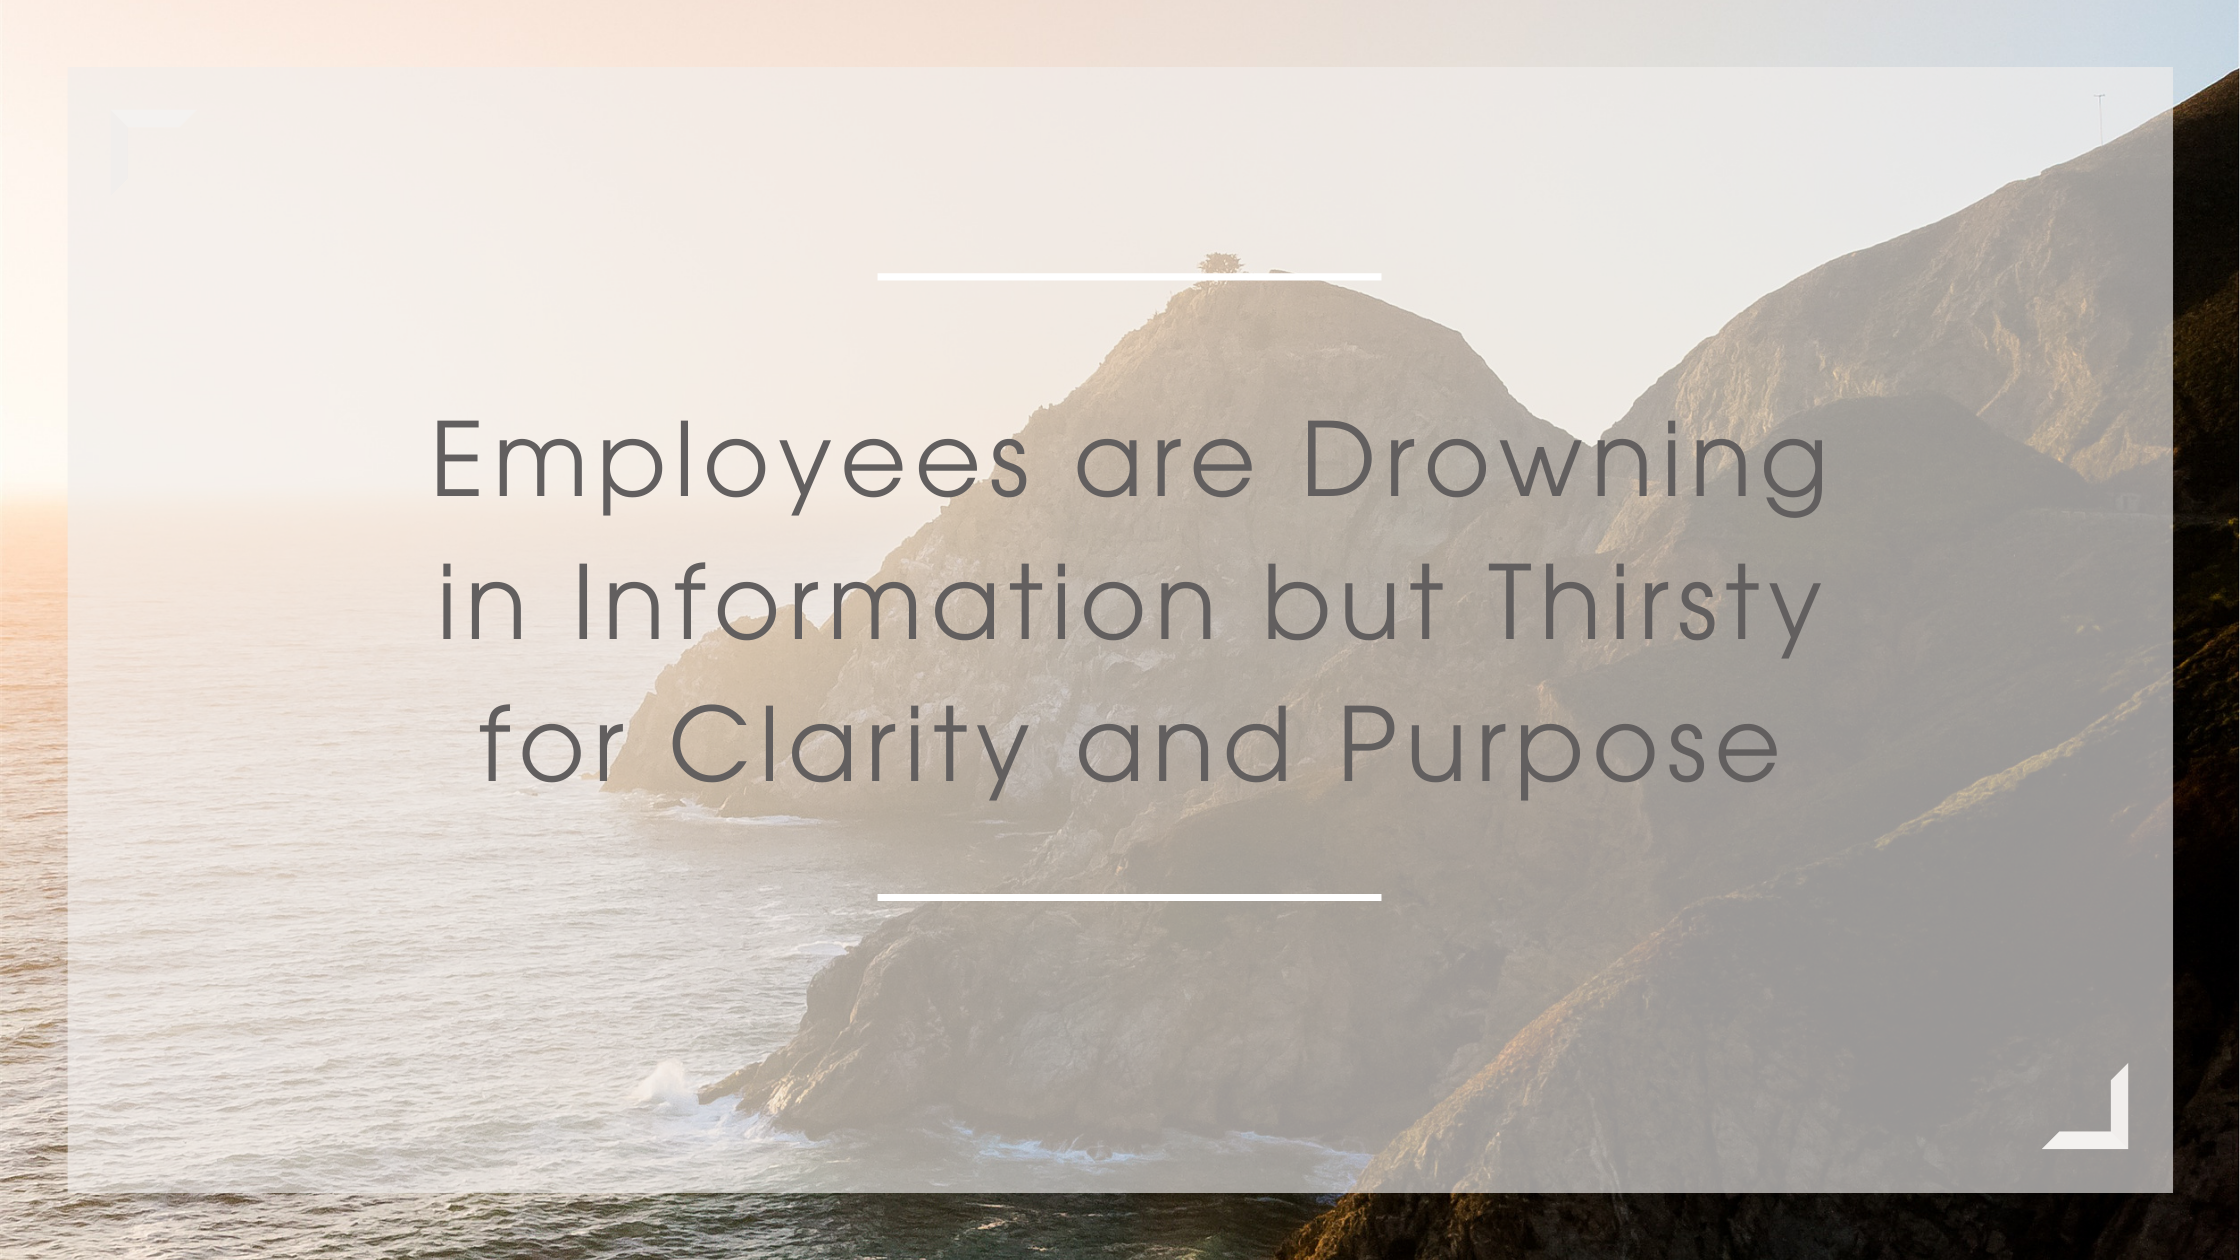 Employees are Drowning in Information but Thirsty for Clarity and Purpose